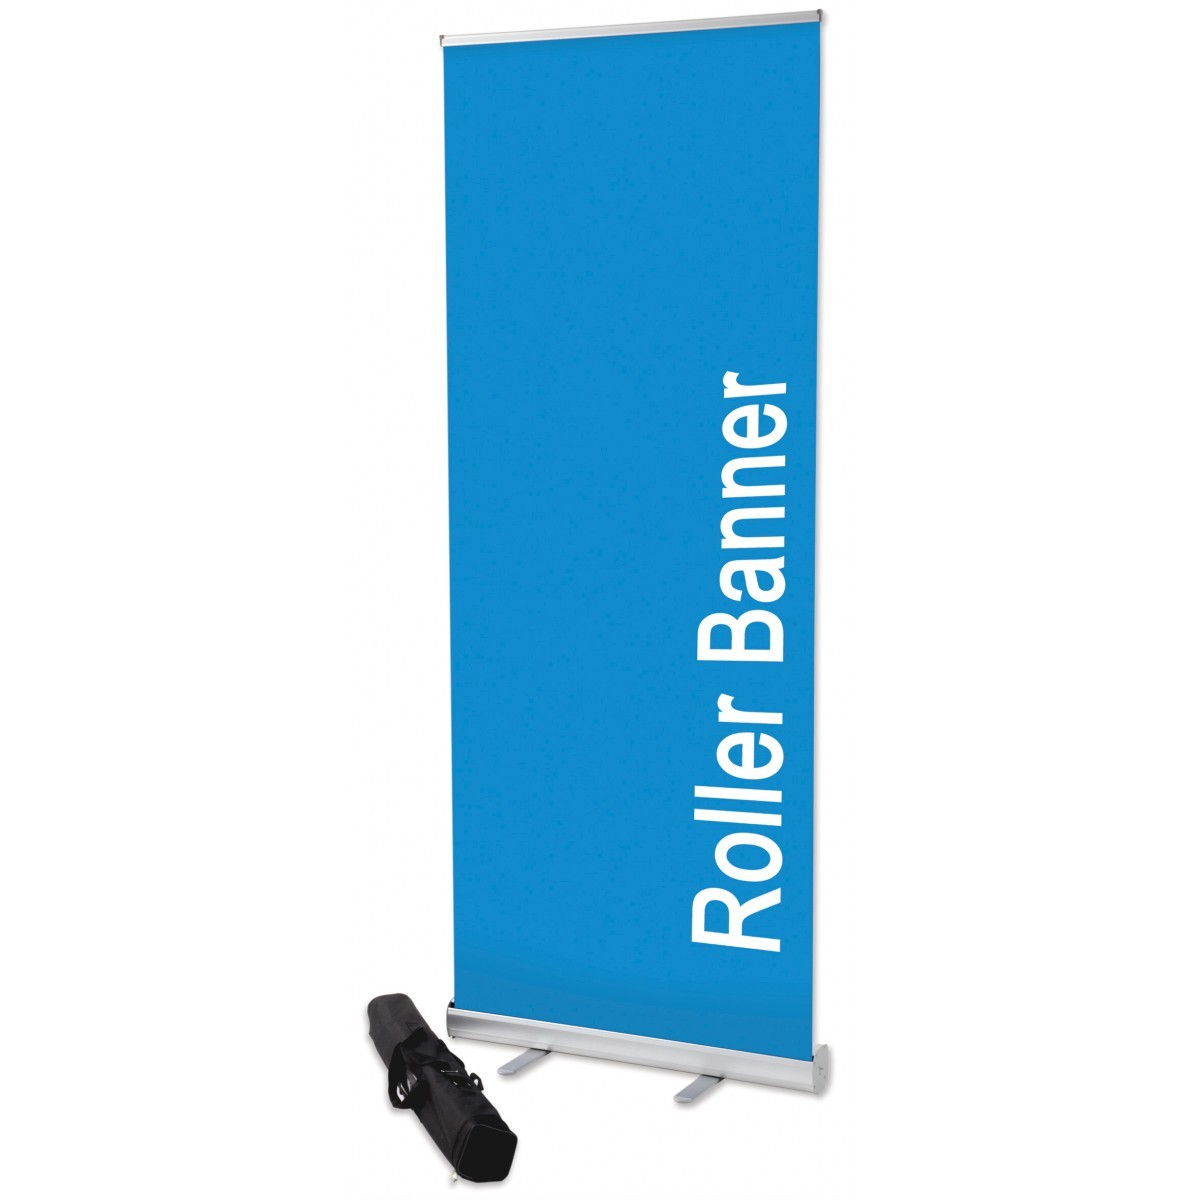 cheap church chairs for sale chair cover rentals lethbridge budget roll up banner - 24 hr printing, sameday printer near me, printing ...